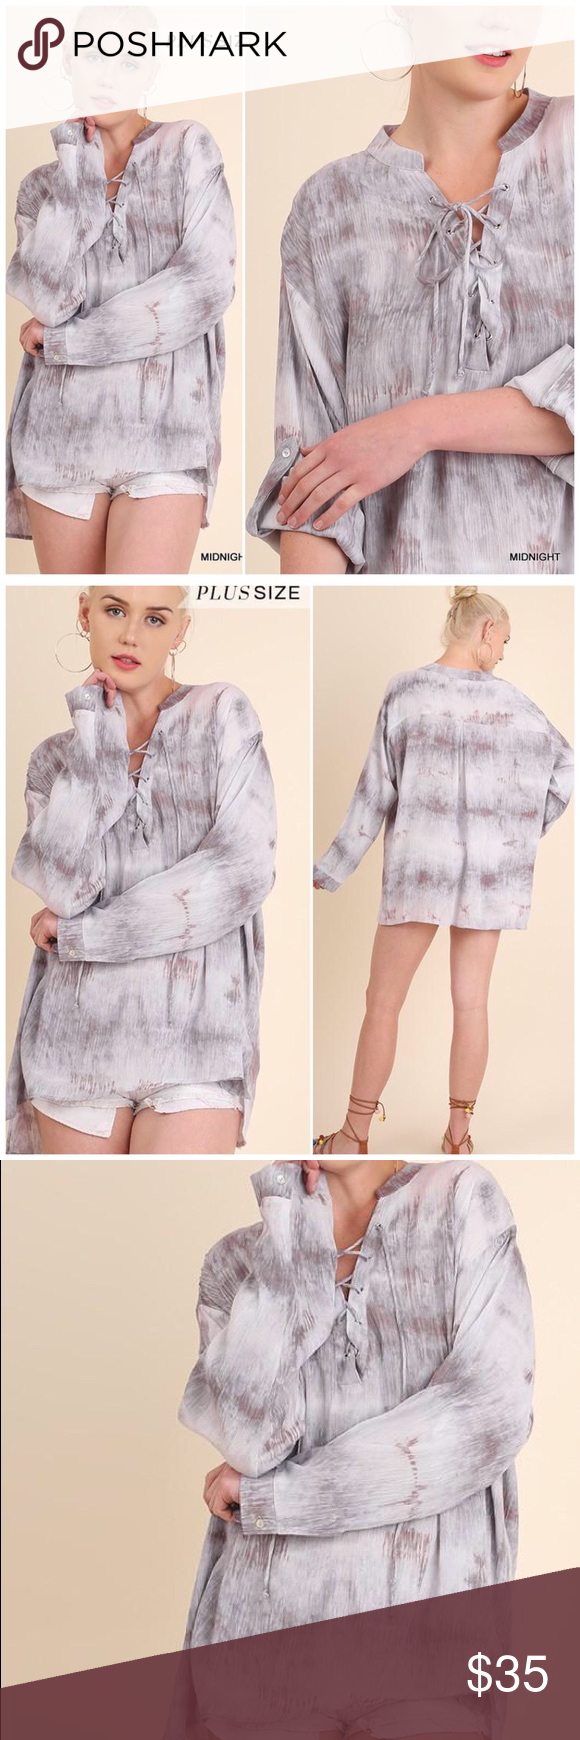 Closing saleplus tie dye drawstring tunic top boutique in